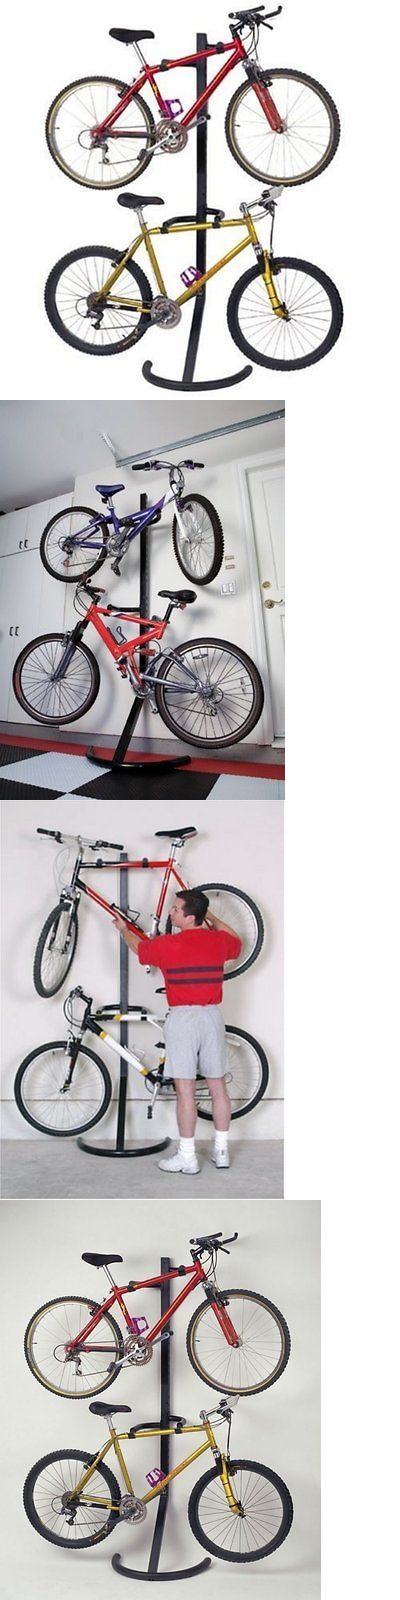 Bicycle Stands and Storage 158997: Bike Rack Stand Storage Bicycle Wall Mount 2 Hanger Organizer Parking Garage New -> BUY IT NOW ONLY: $89.99 on eBay!